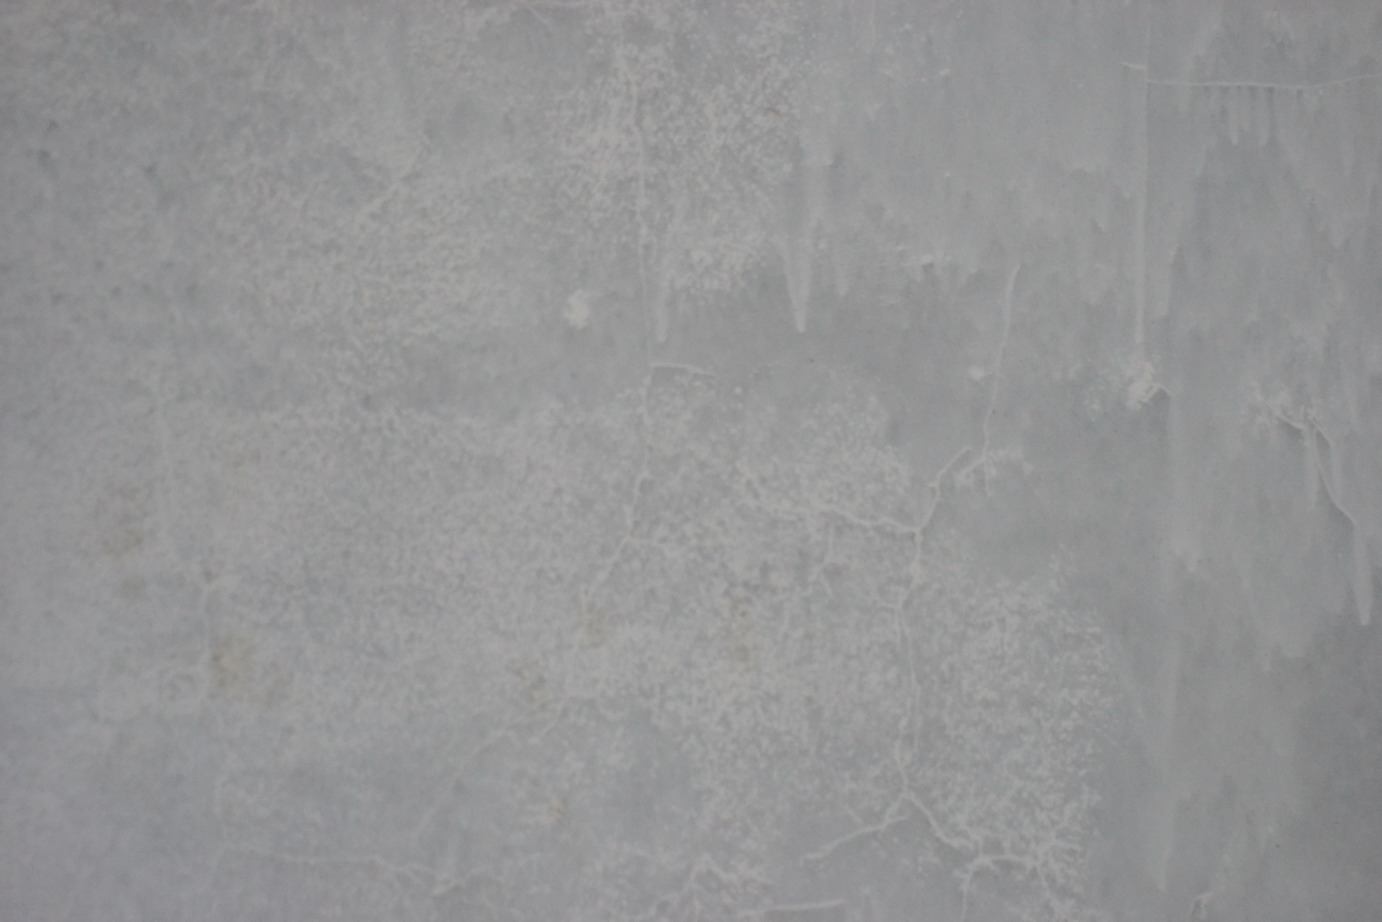 Wall Texture, Crack, Paint, Texture, Wall, HQ Photo